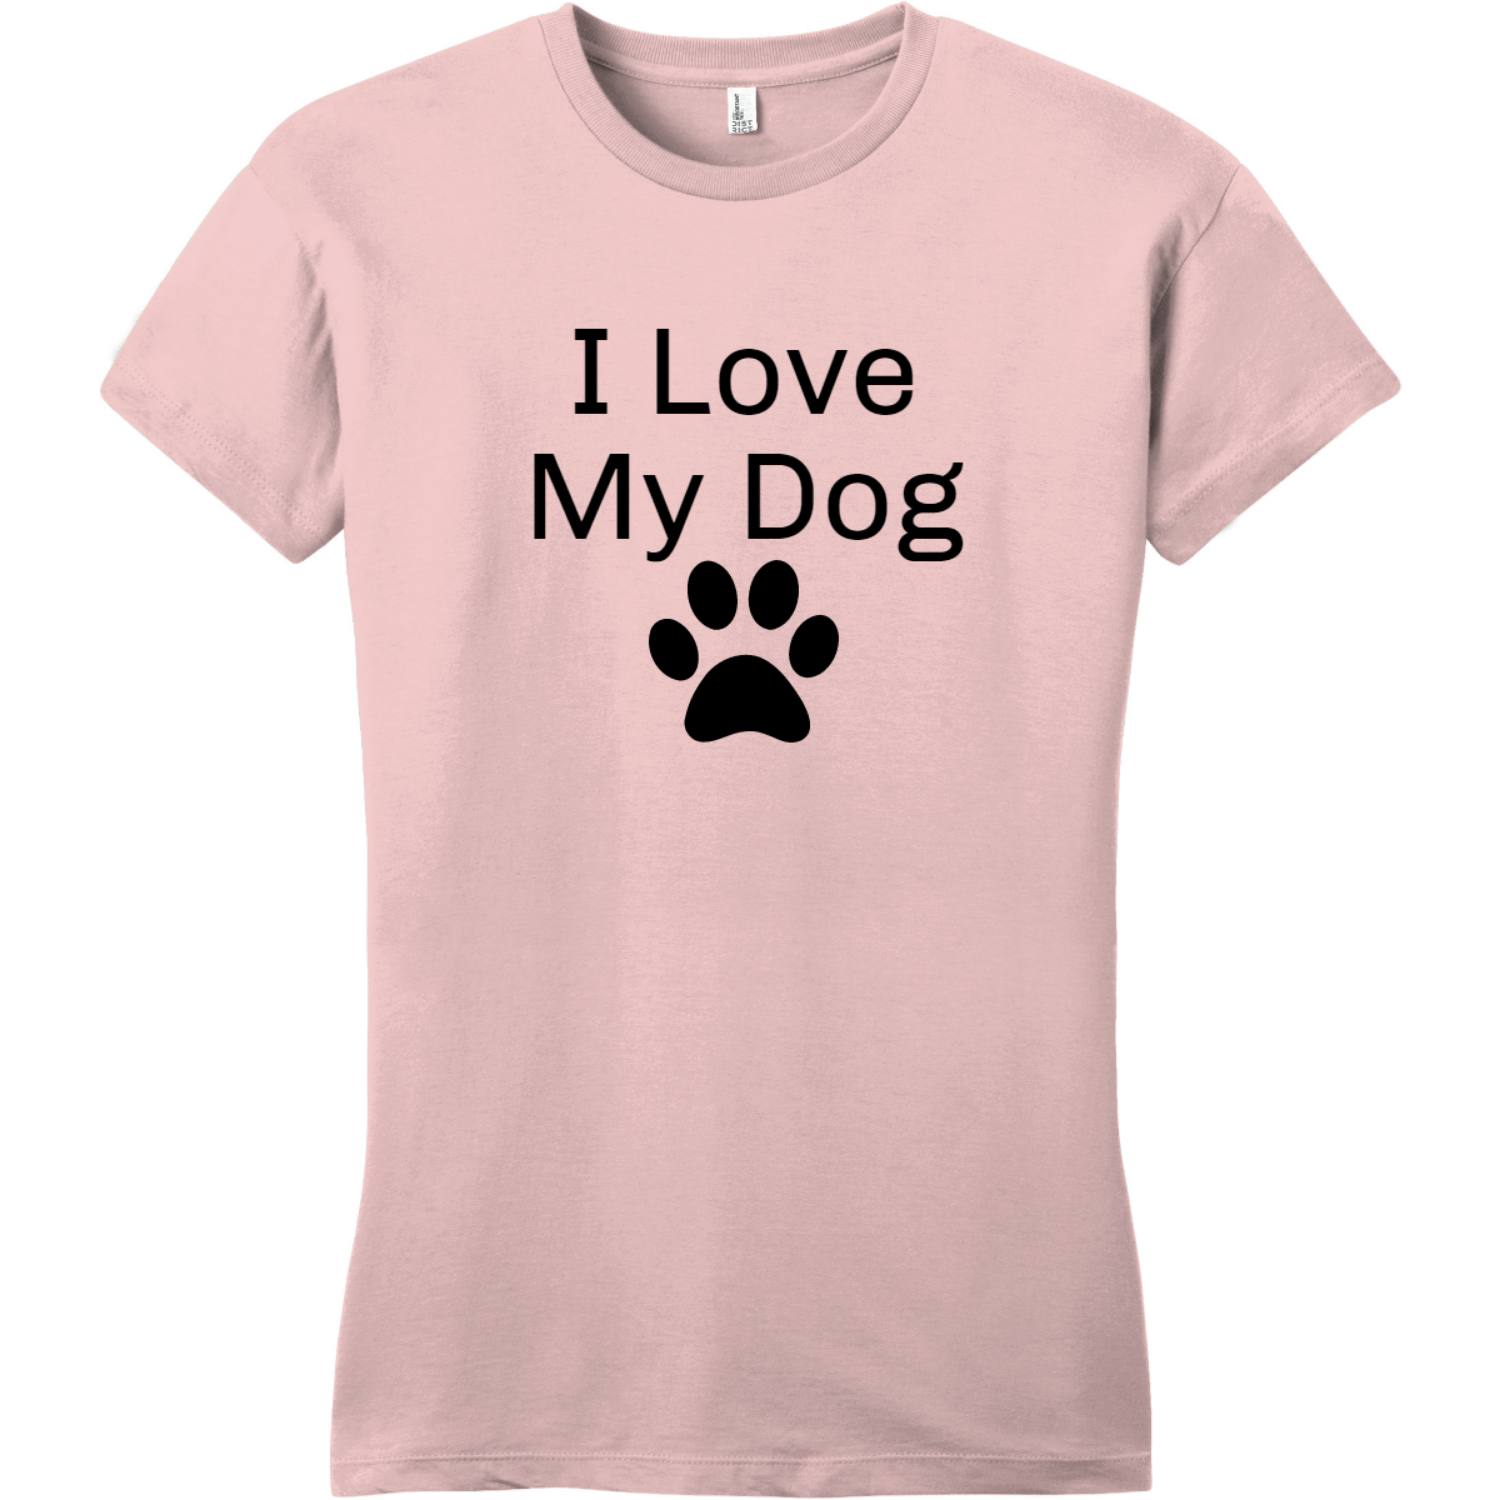 I Love My Dog Women's T-Shirt Dusty Lavender District Women's Very Important Tee DT6002